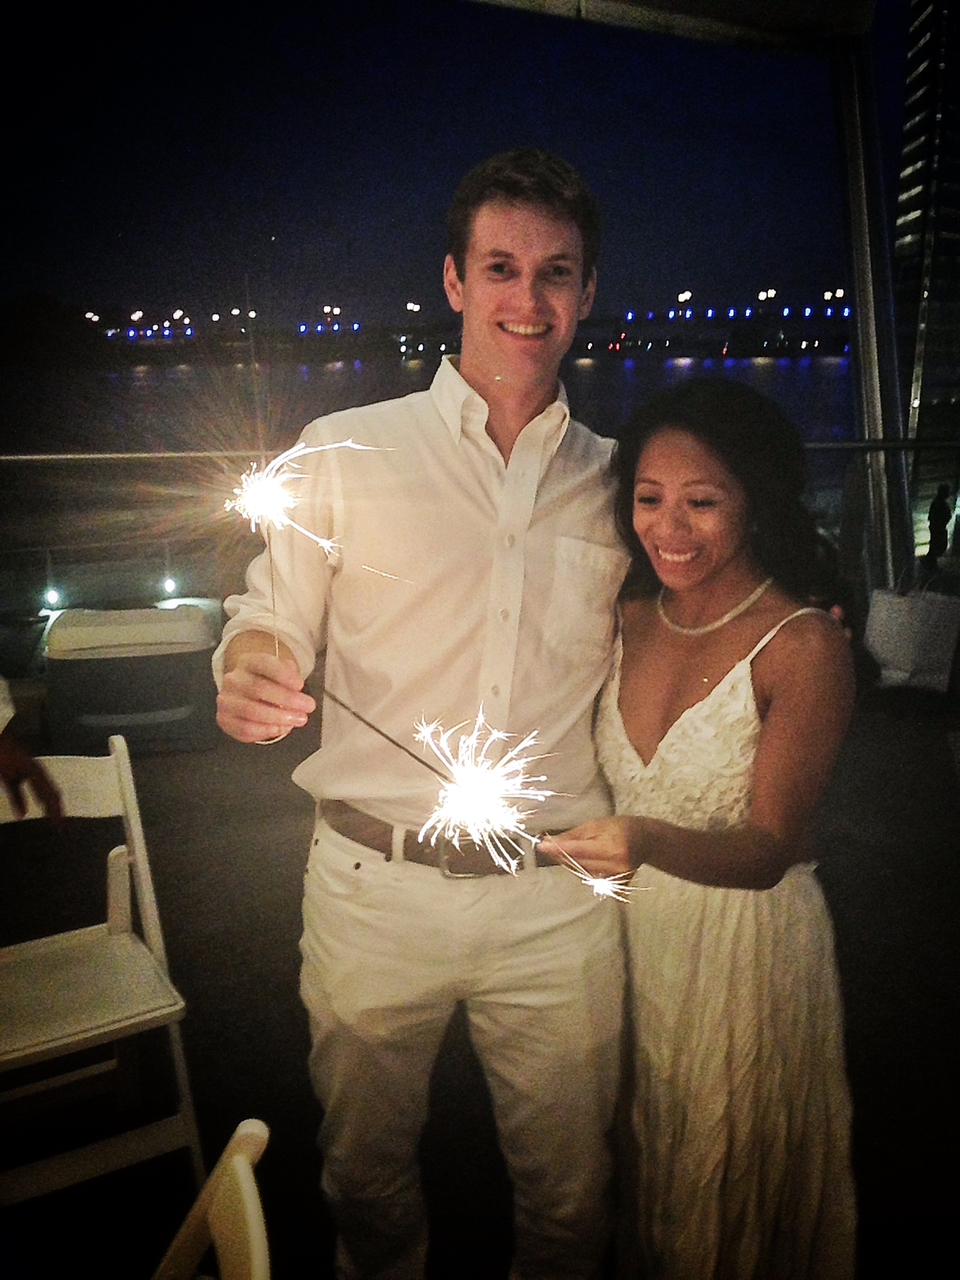 The sparkler send-off was an amazing experience